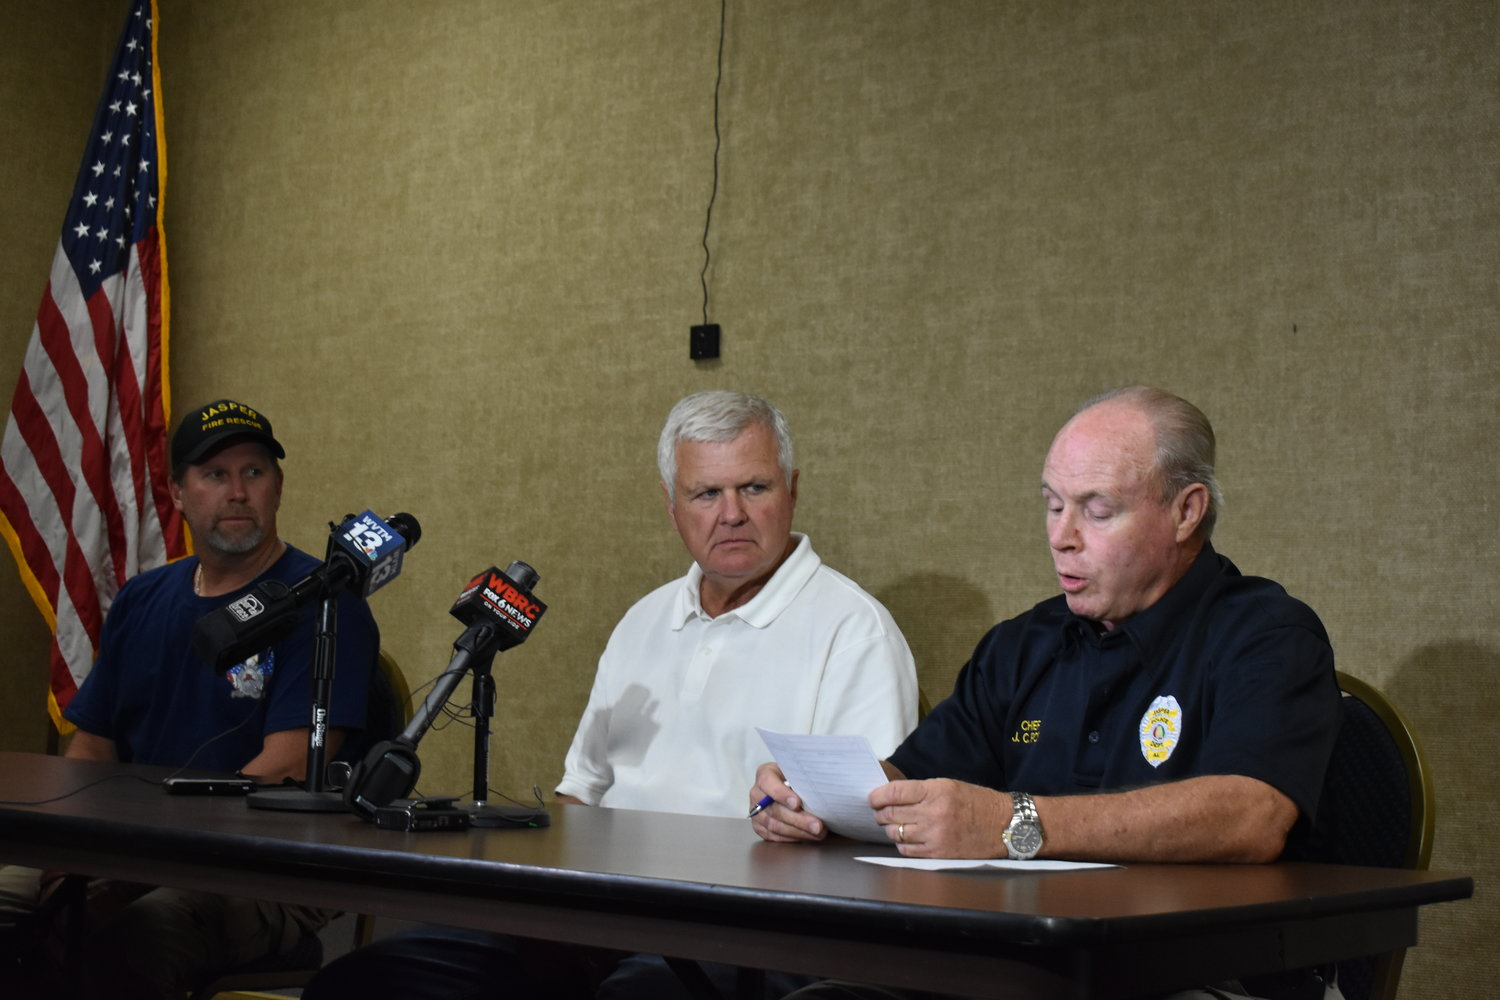 Jasper officials speak to the press Saturday night after a drowning of a 5-year-old girl at the Natatorium that afternoon. Shown, from left, are Fire Chief David Clark, Mayor David O'Mary, and Police Chief J.C. Poe.